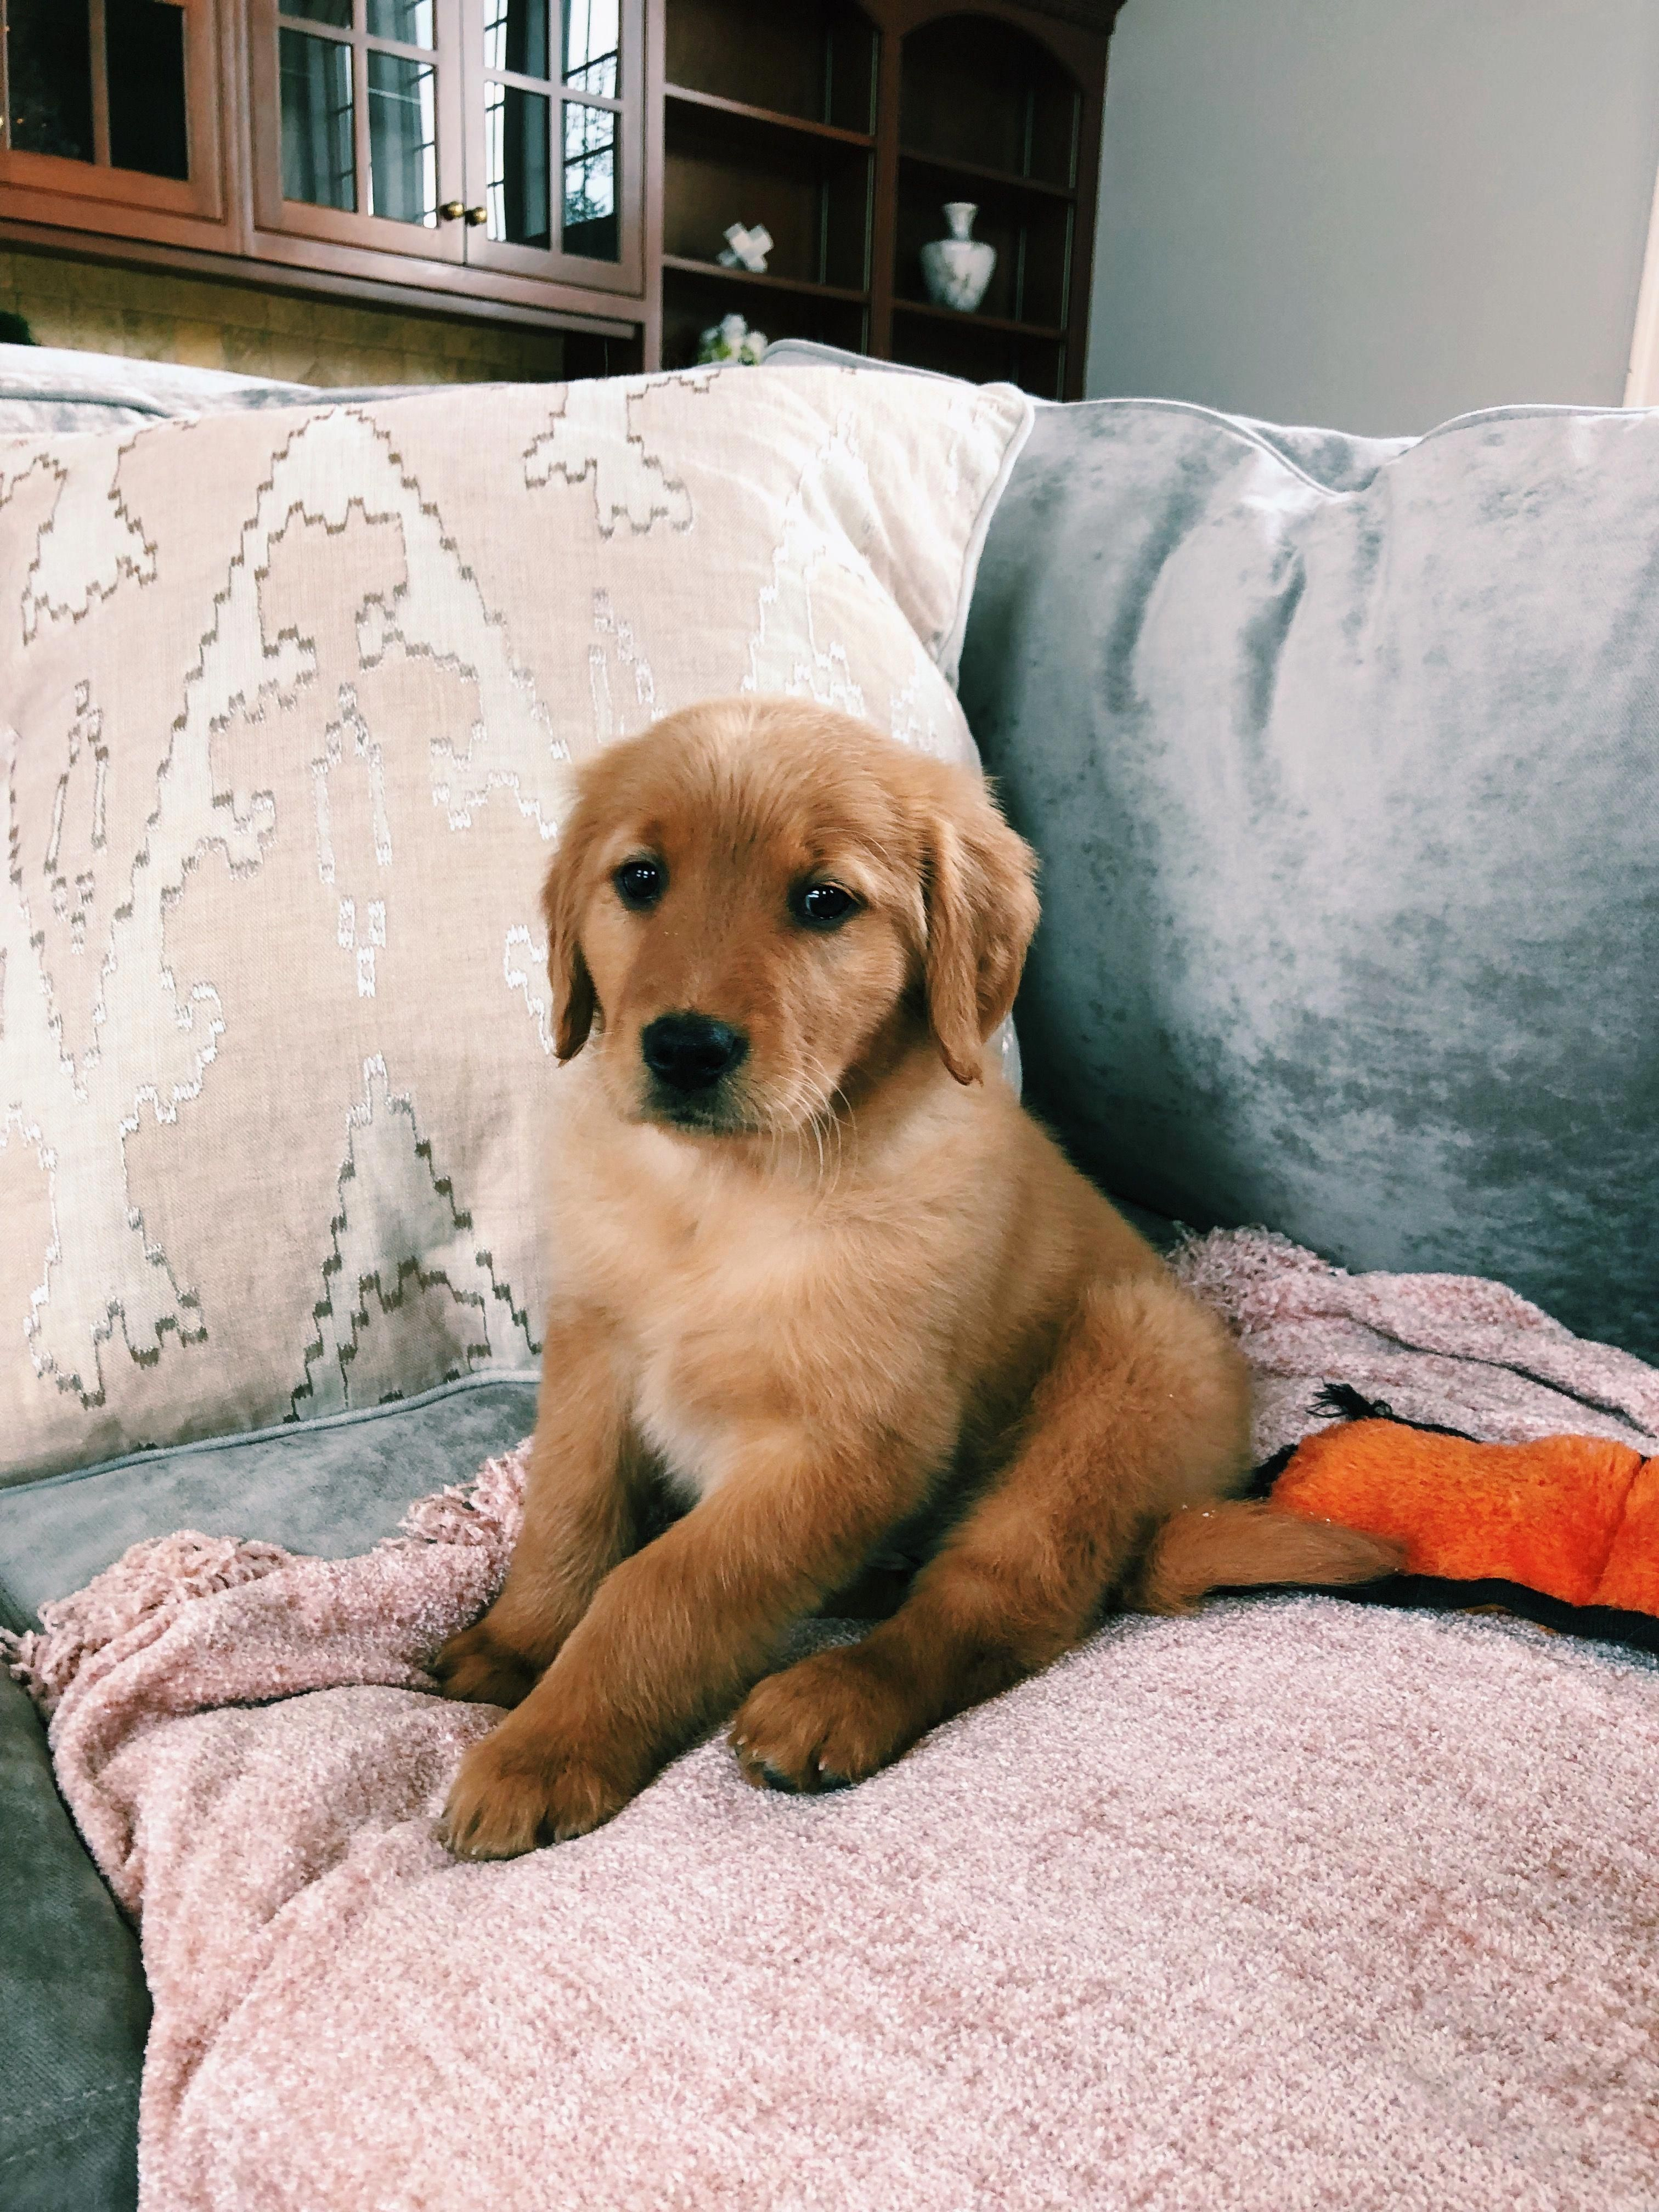 Find Out Even More Details On Golden Retriever Pup Visit Our